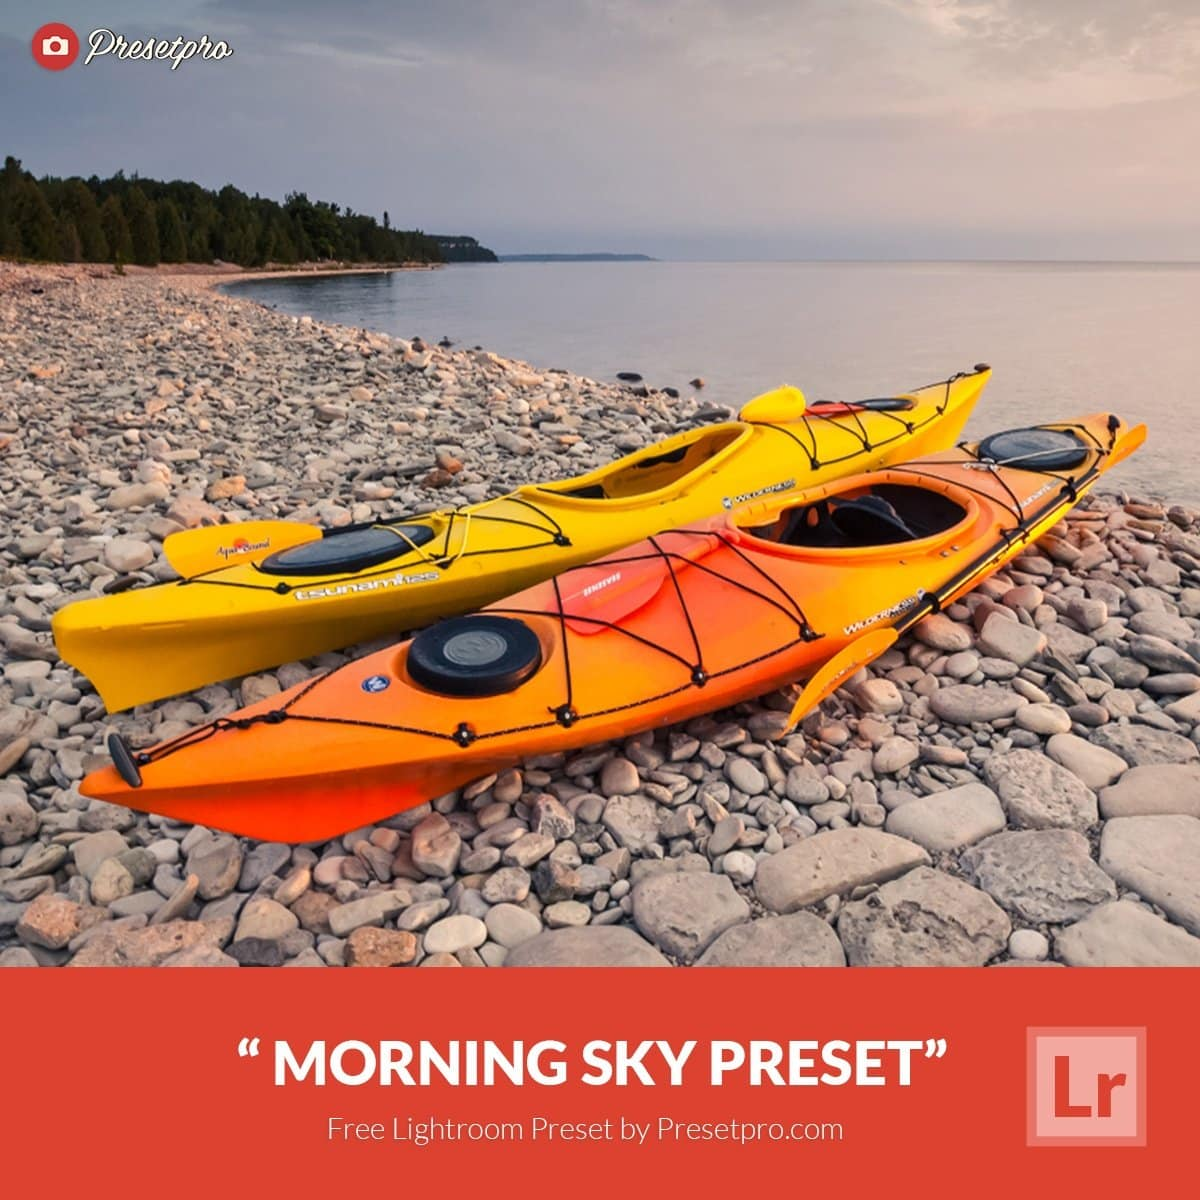 Free-Lightroom-Preset-Morning-Sky-Presepro.com